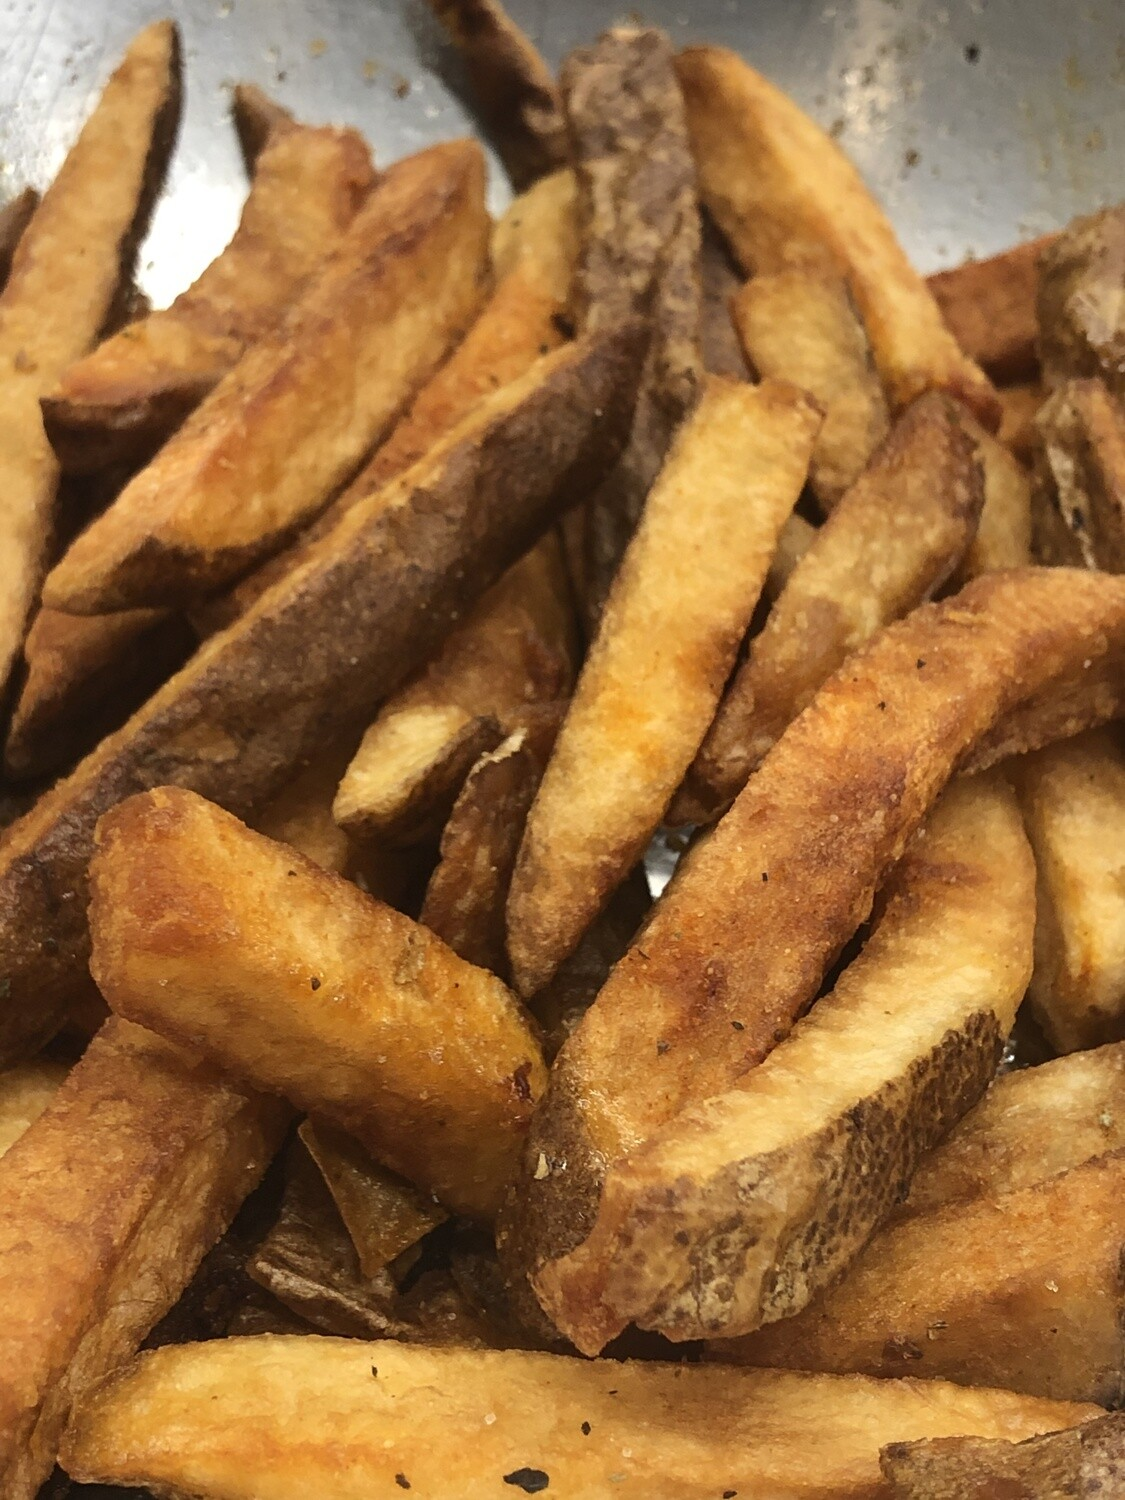 Fresh Cut Fries - cut and peeled ourselves!